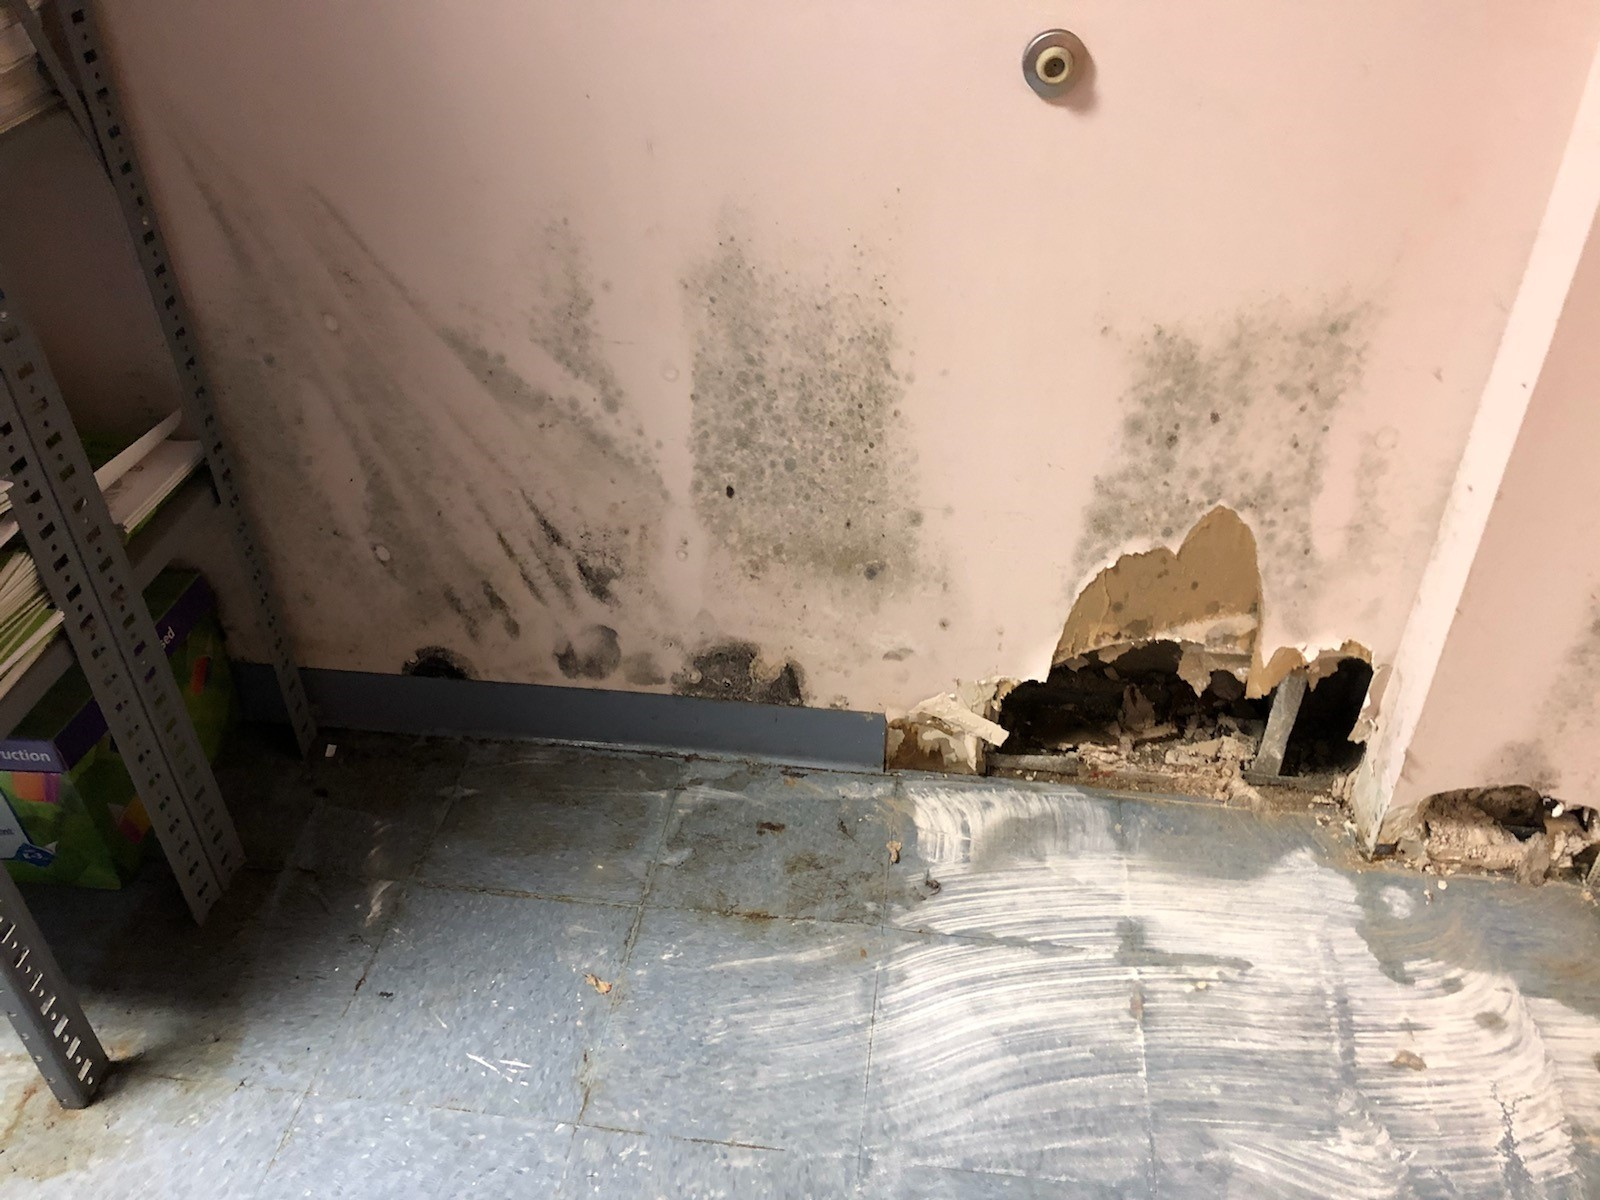 Teachers report mold, rodents, and excessive heat in schools are making them, their students sick